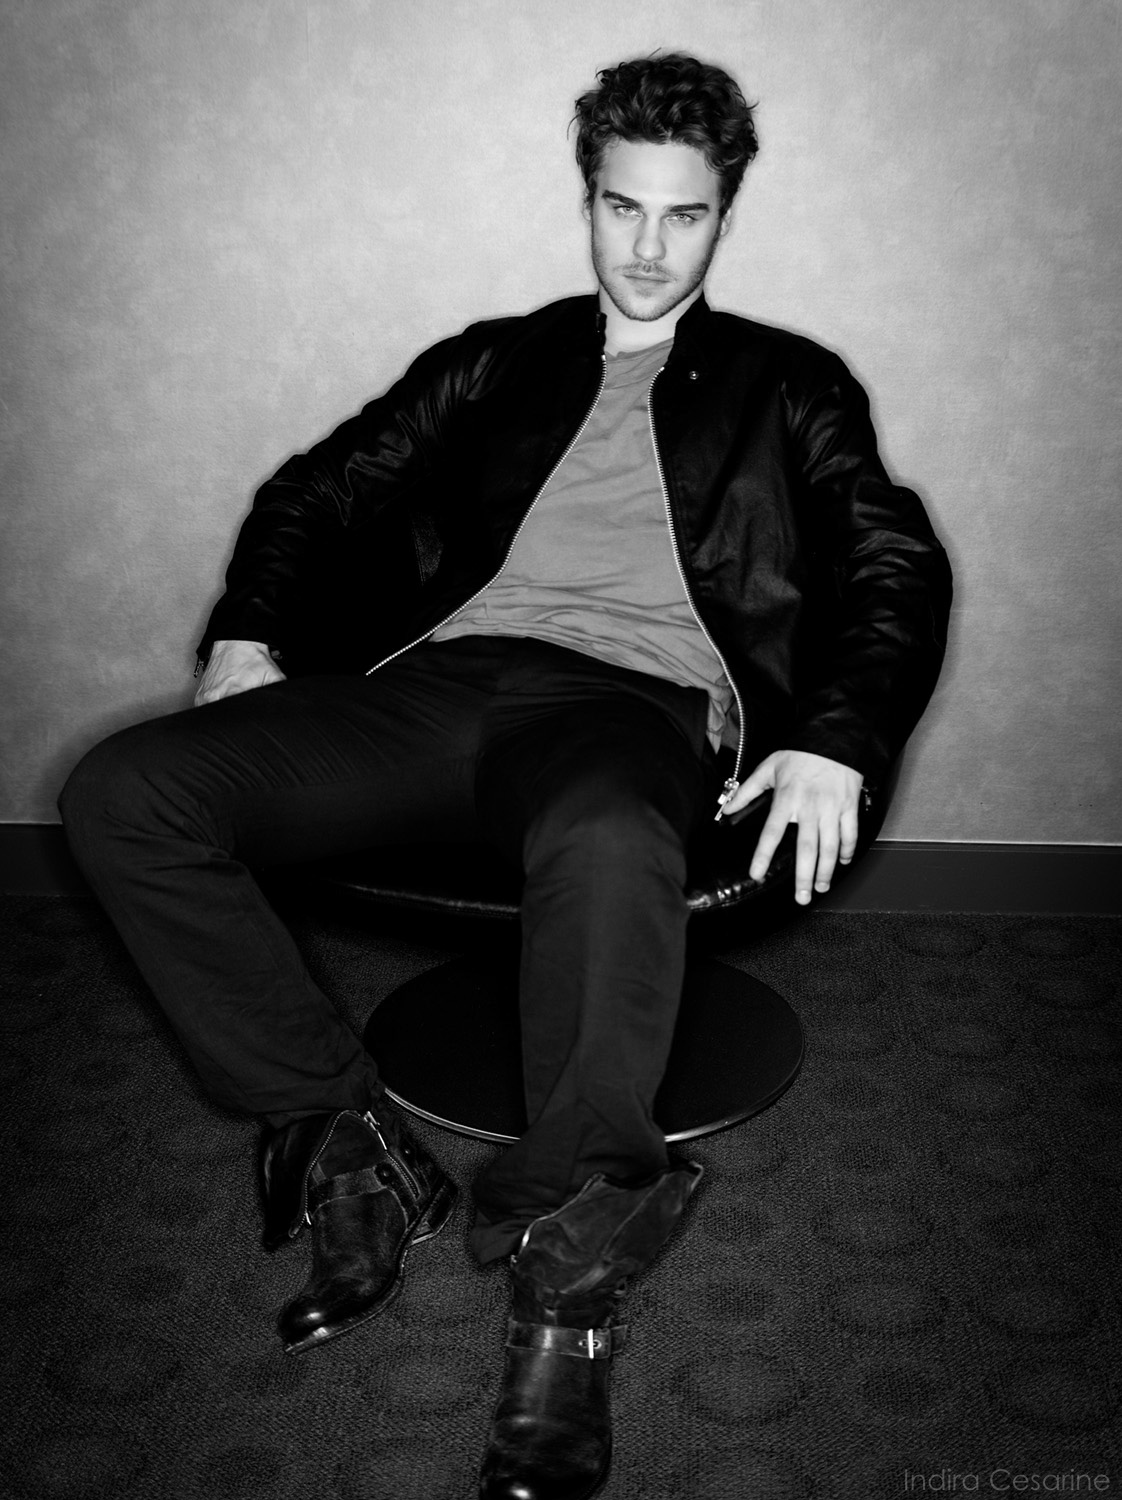 Grey-Damon-Photography-by-Indira-Cesarine-034.jpg